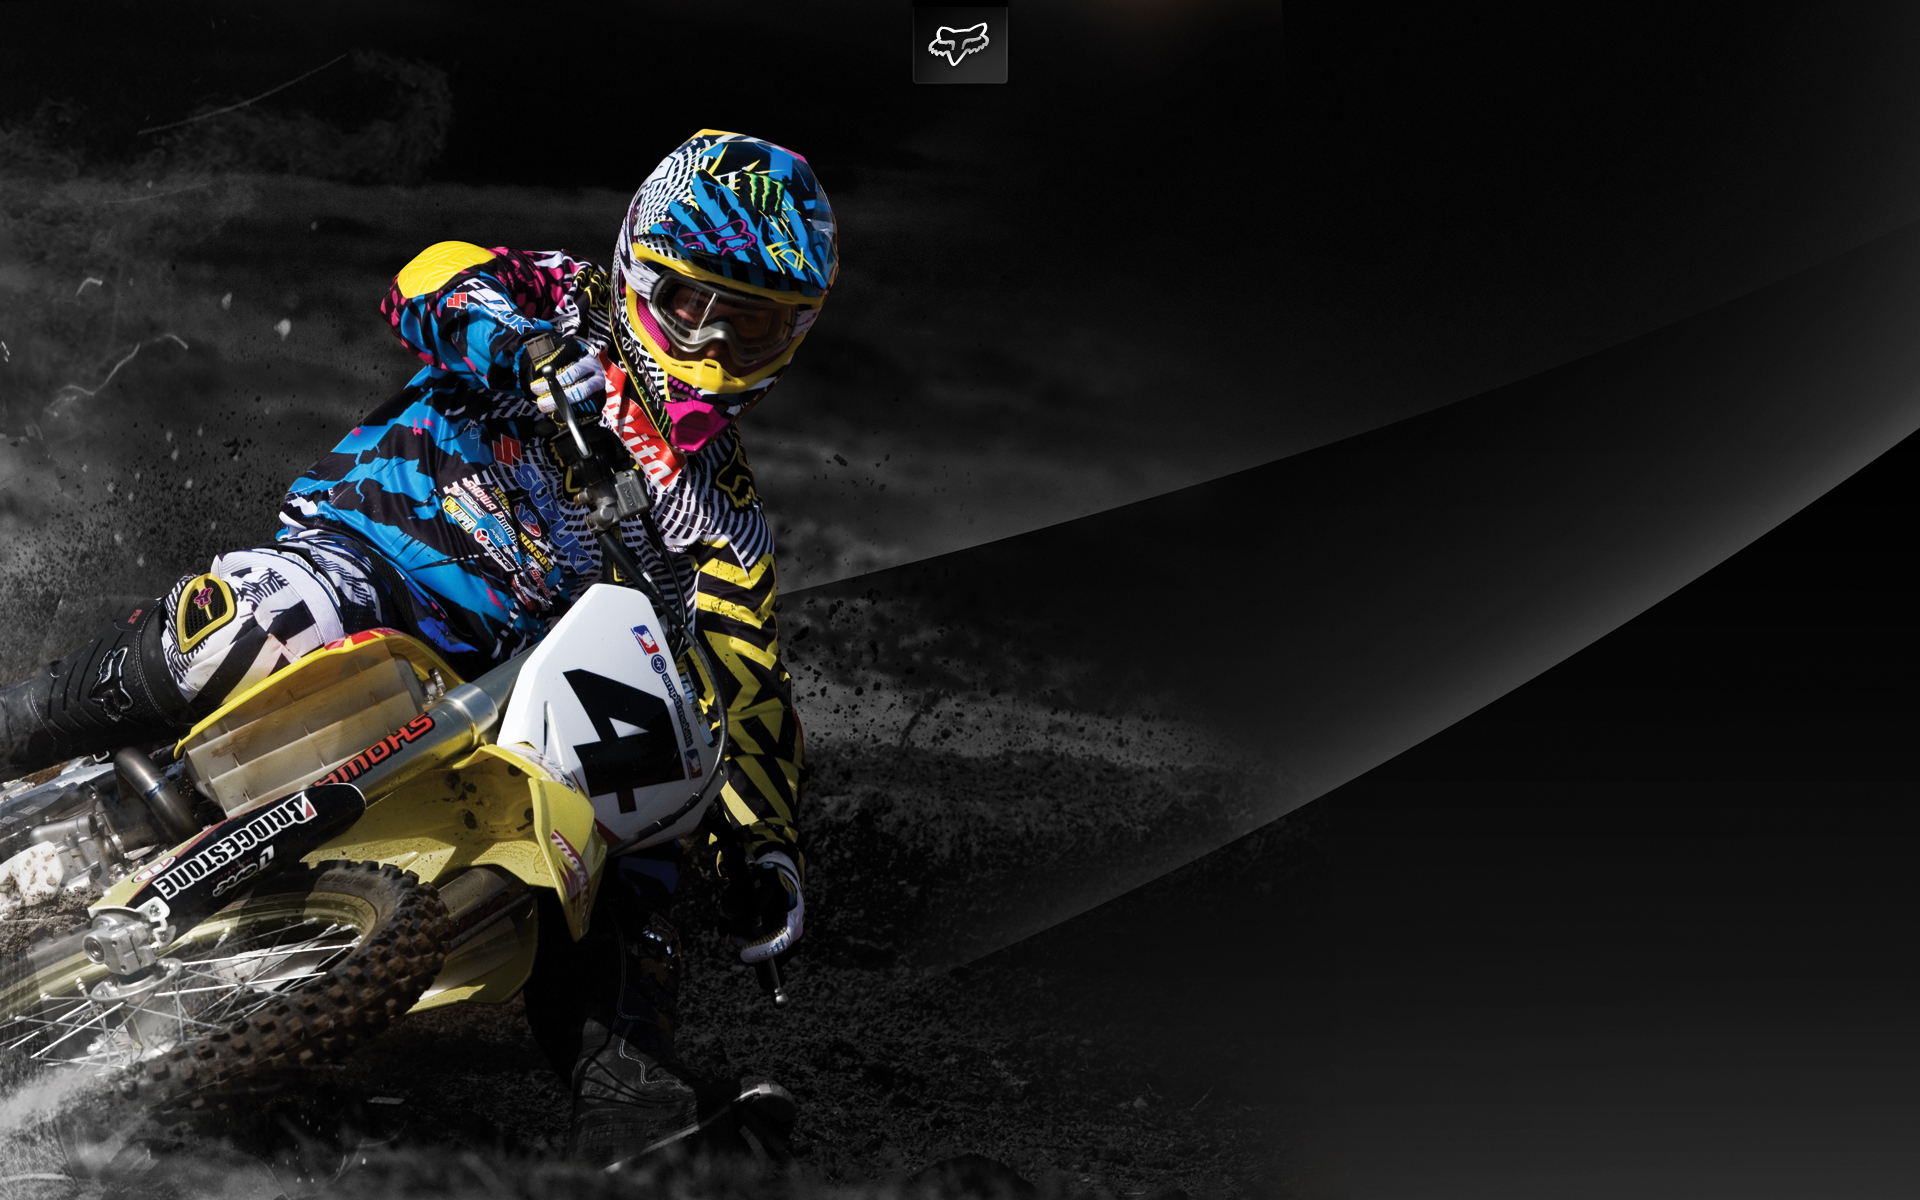 Fox Mx wallpaper   432204 1920x1200